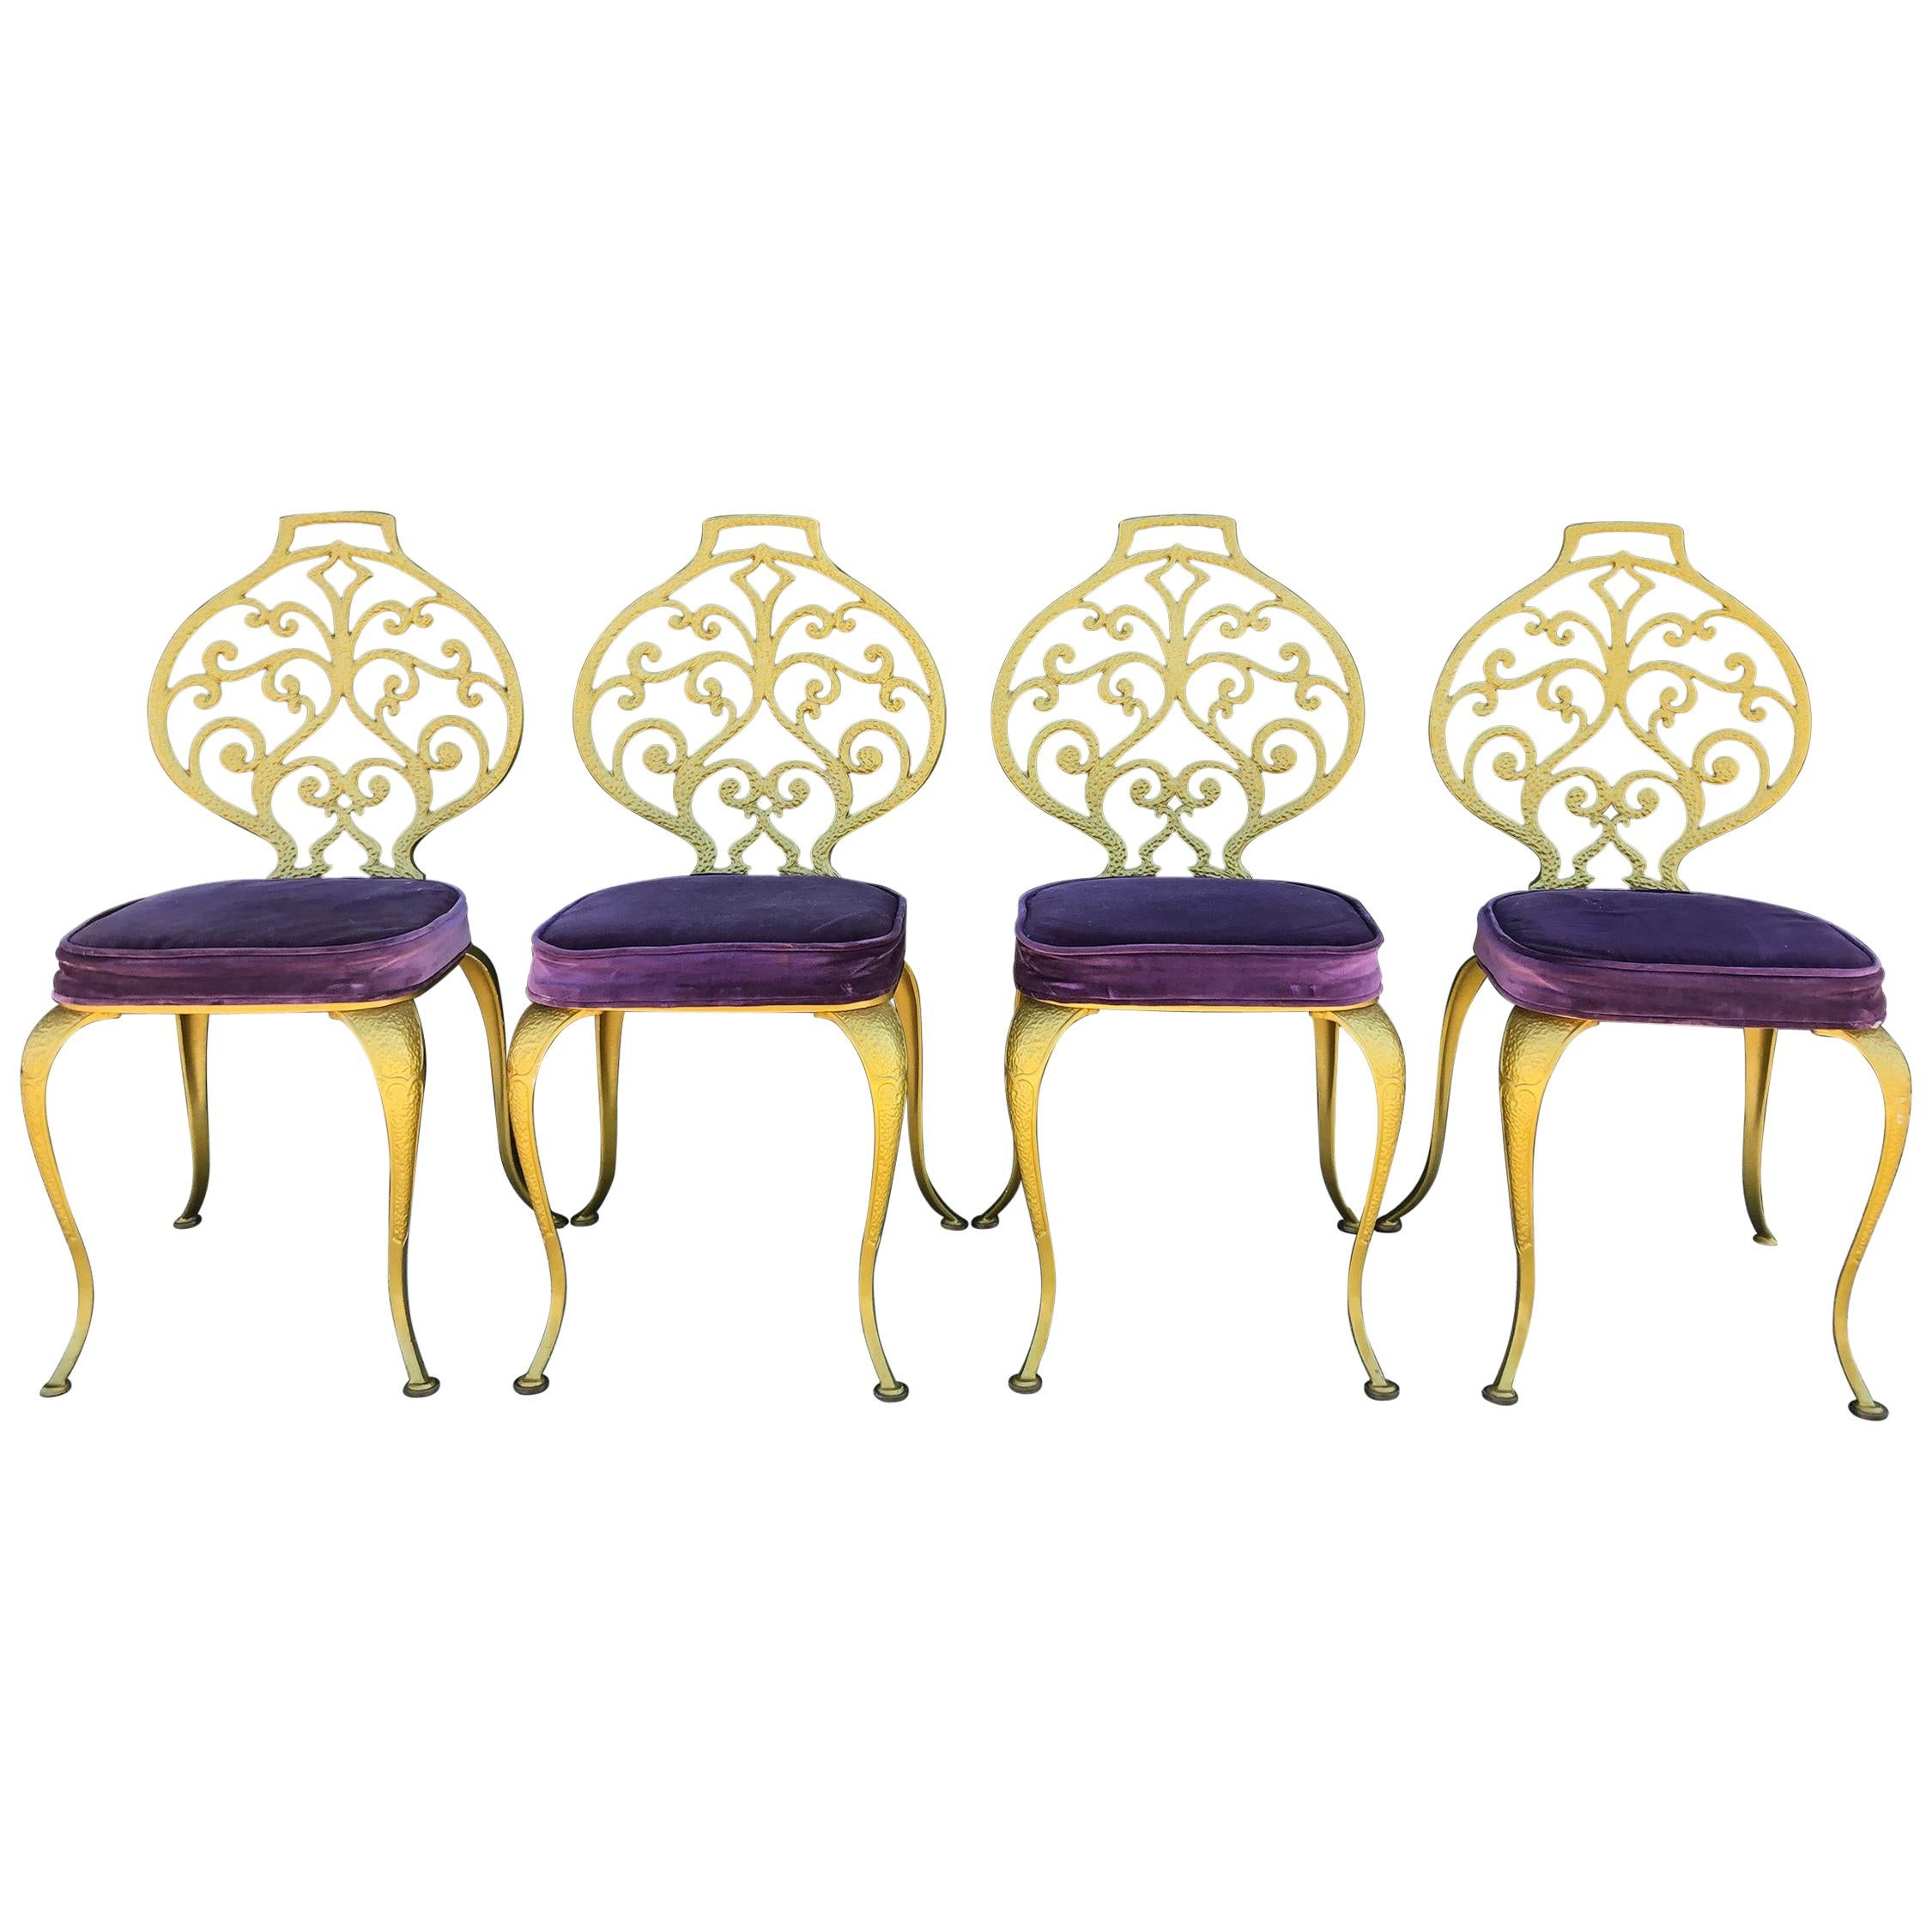 Set of 4 Gold Leafed Thinline Mfg Dining Chairs